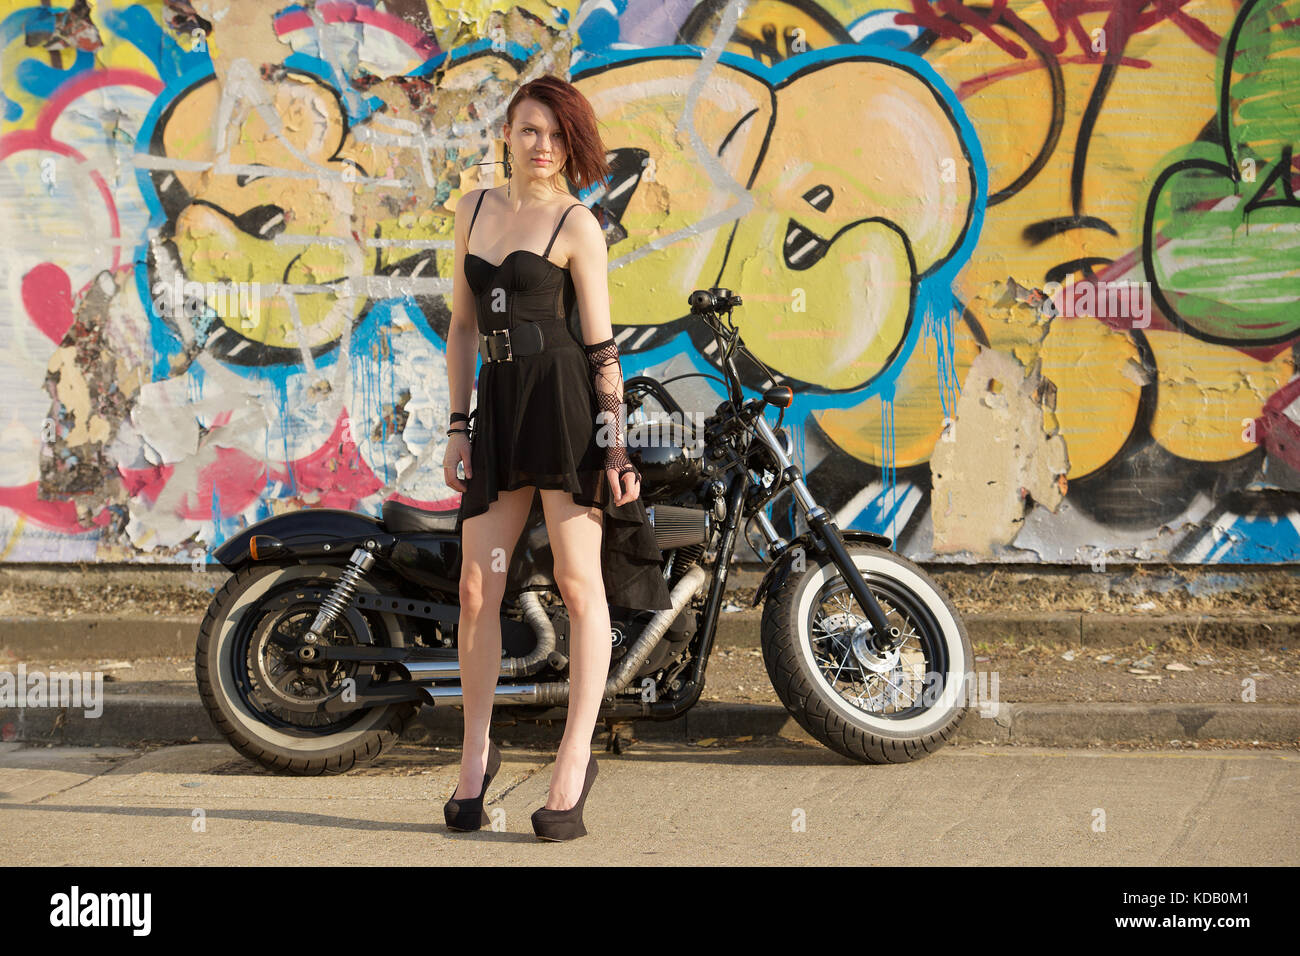 Pretty girl in a short black dress and high heels with a motorcycle against a graffiti background - Stock Image